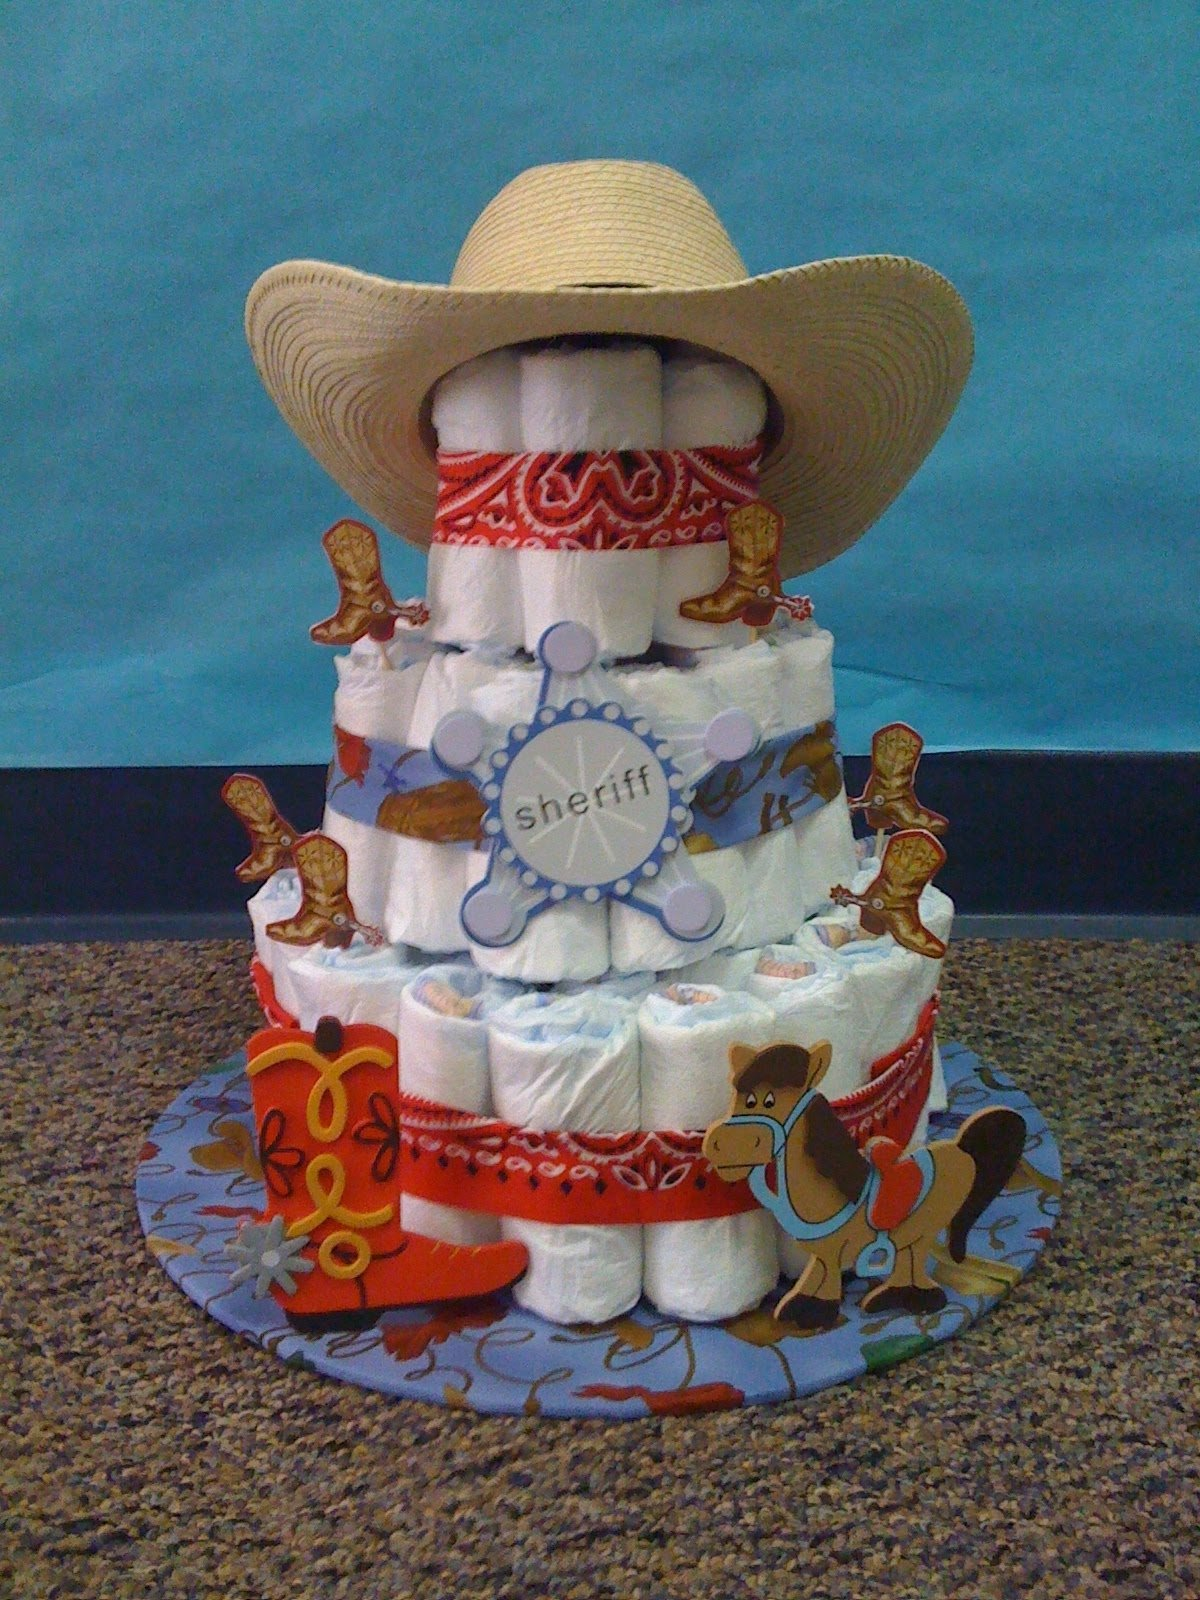 10 Unique Country Themed Baby Shower Ideas 9 adorable country themed baby shower ideas 2021